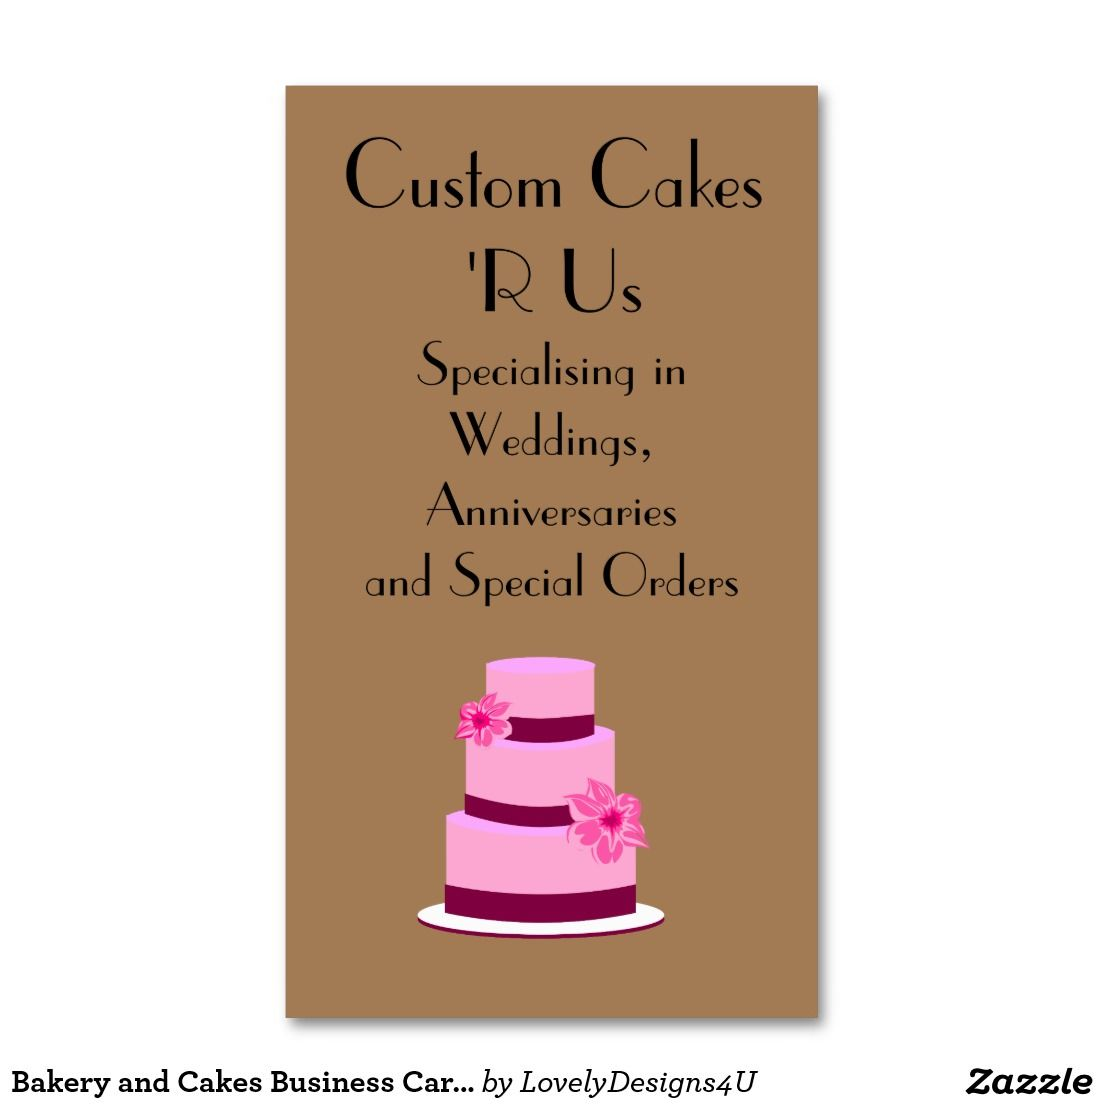 Bakery and Cakes Business Cards | Business Cards | Pinterest